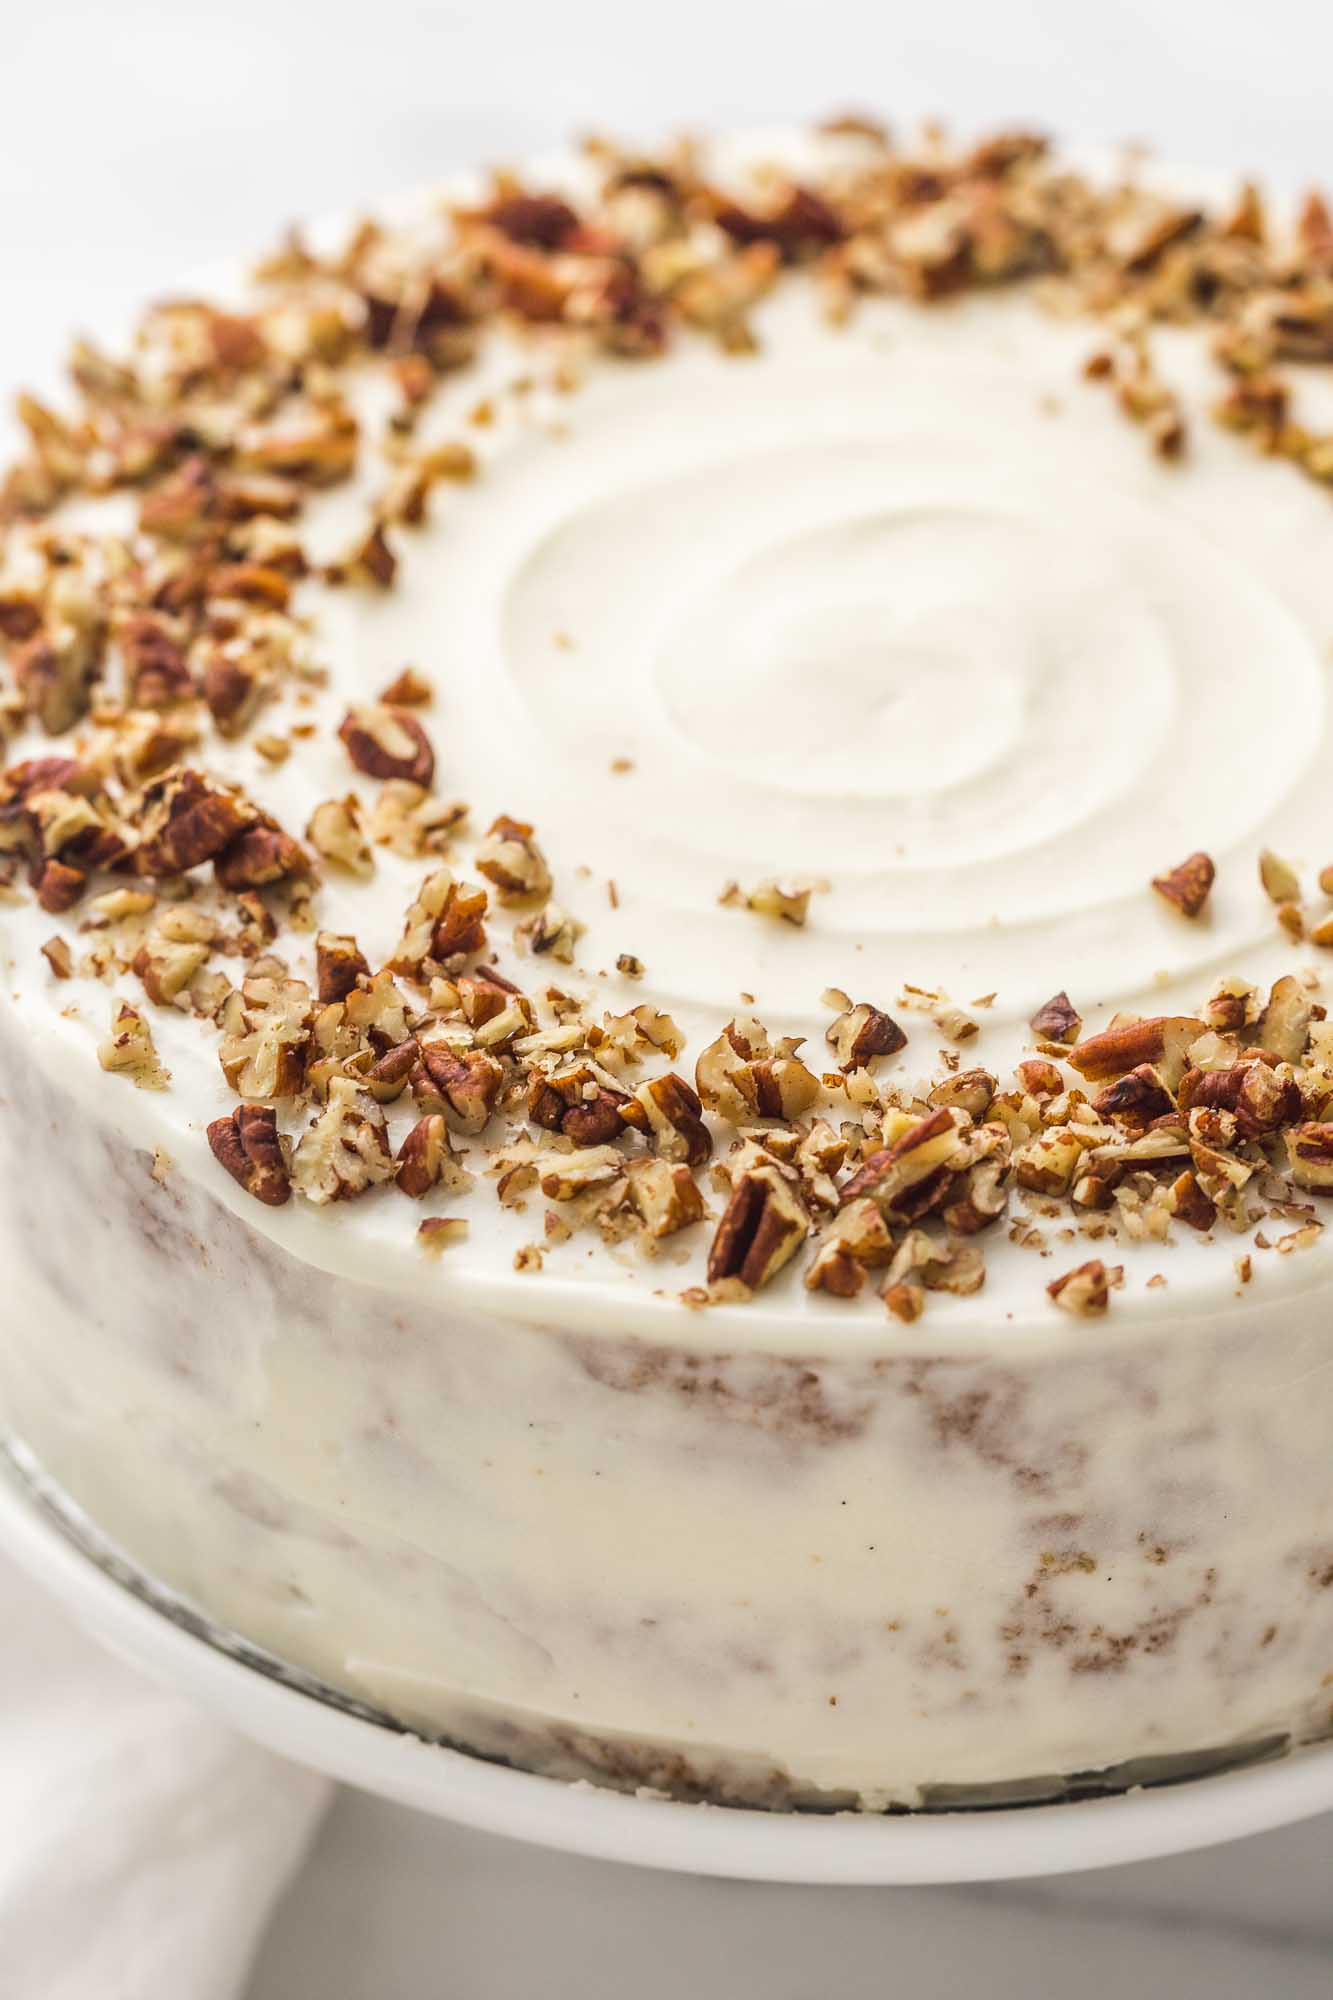 Side view of the gluten free carrot cake with cream cheese frosting and crushed pecans.